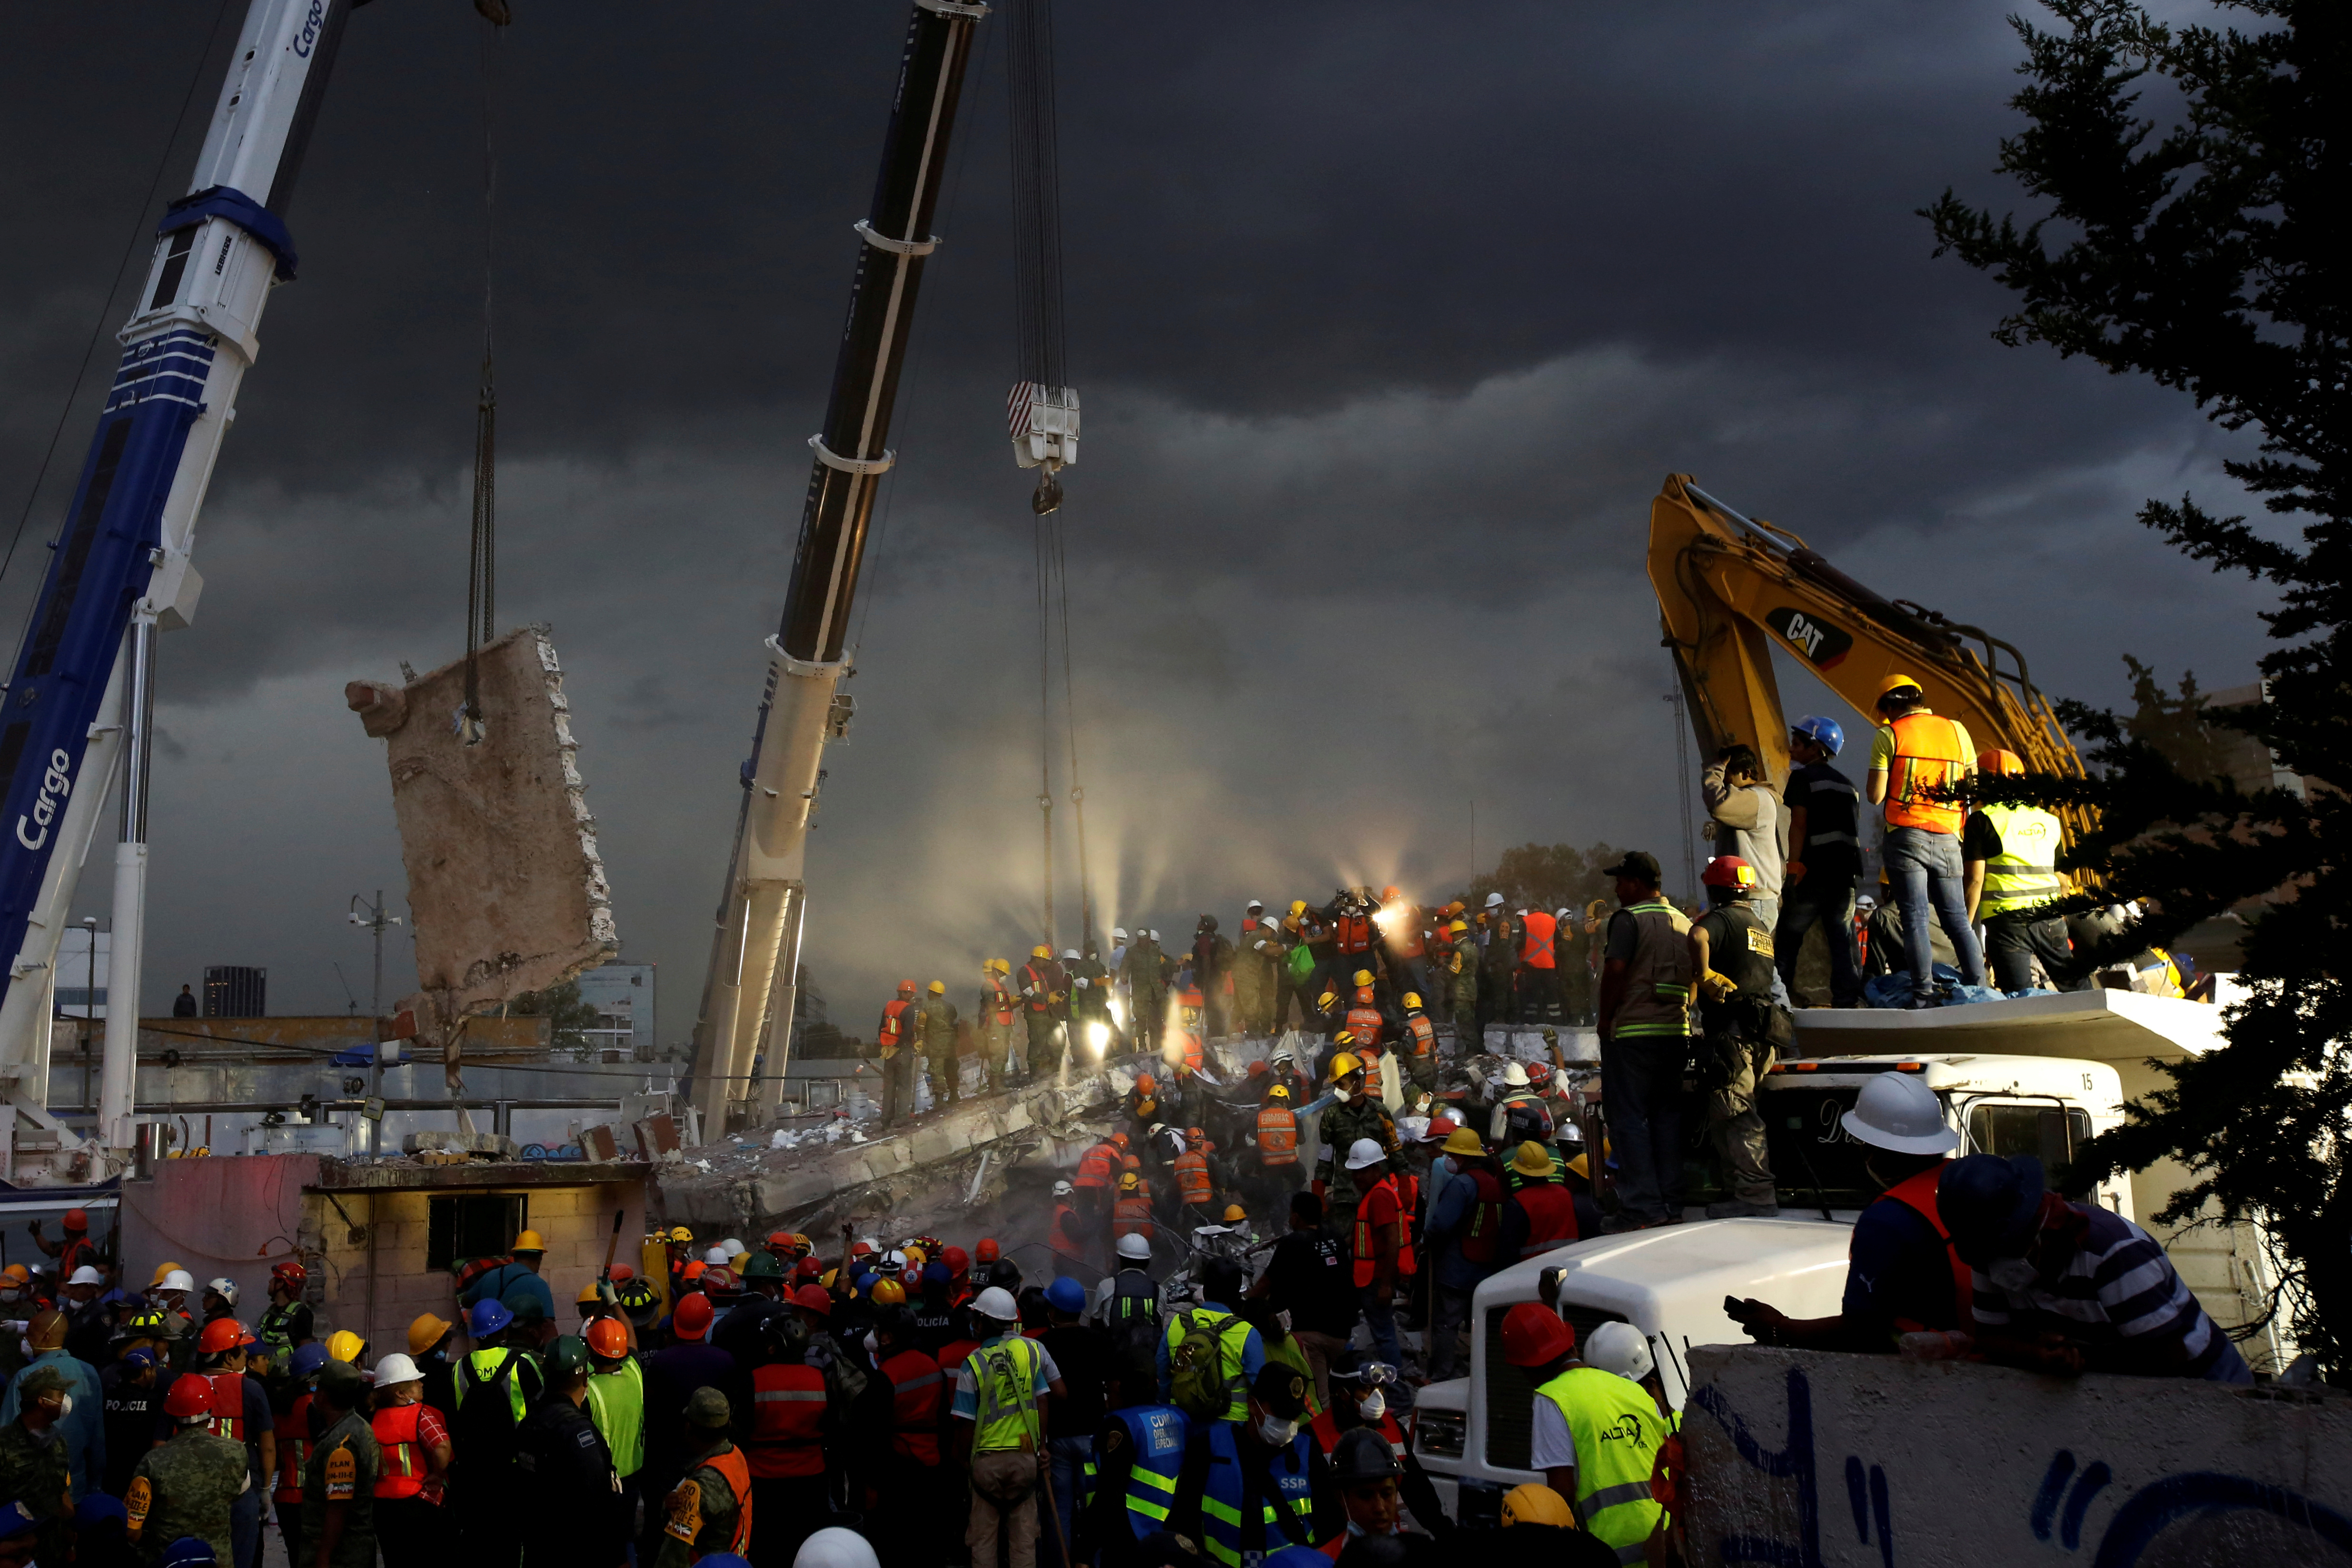 Rescue workers and Mexican soldiers take part in a rescue operation at a collapsed building after an earthquake at the Obrera neighborhood in Mexico City, Mexico September 20, 2017.